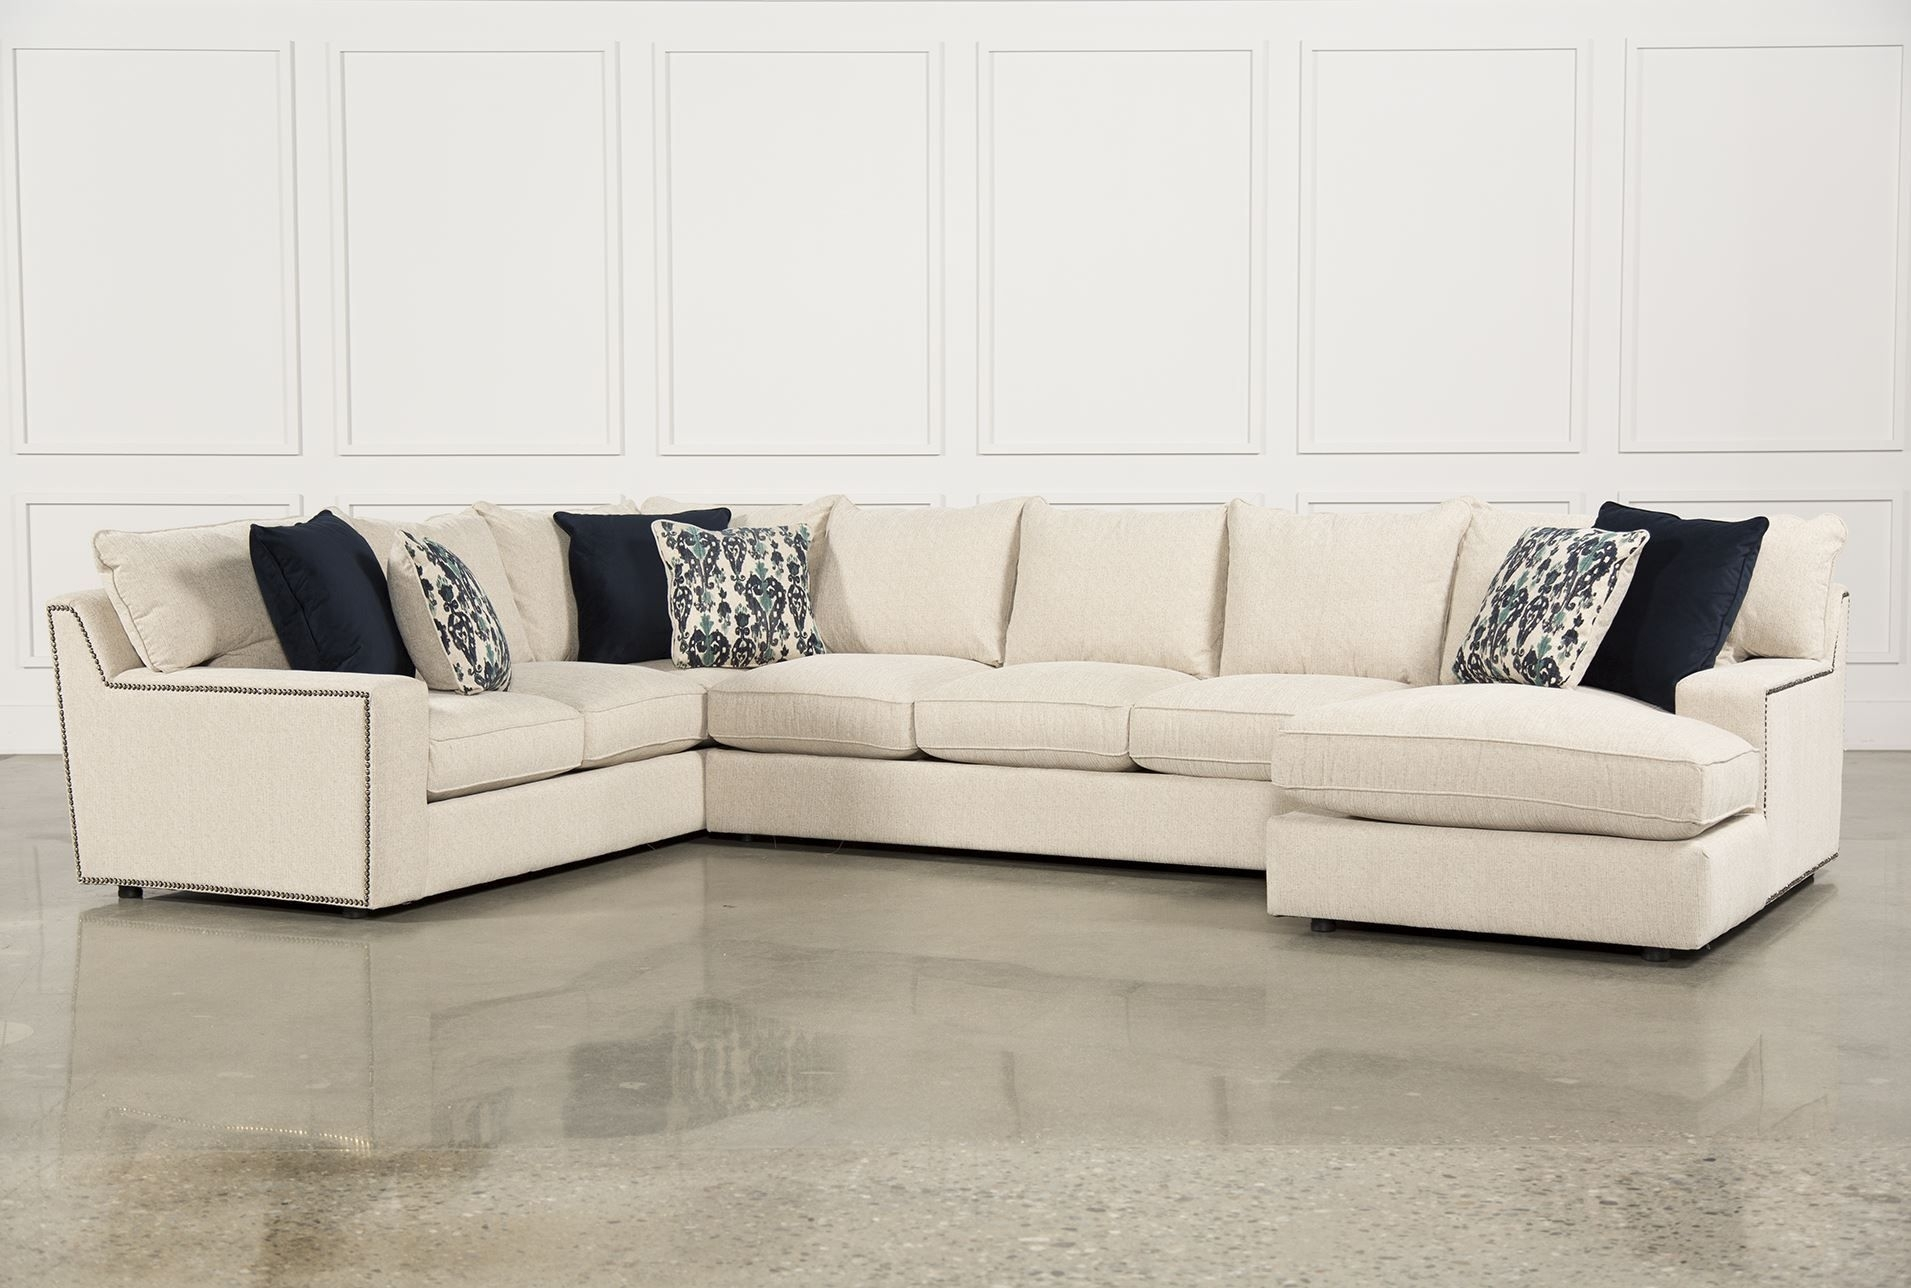 Rennell 3 Piece Sectional W/raf Chaise | Home Decor Spanish / Tuscan In Meyer 3 Piece Sectionals With Laf Chaise (Image 20 of 25)